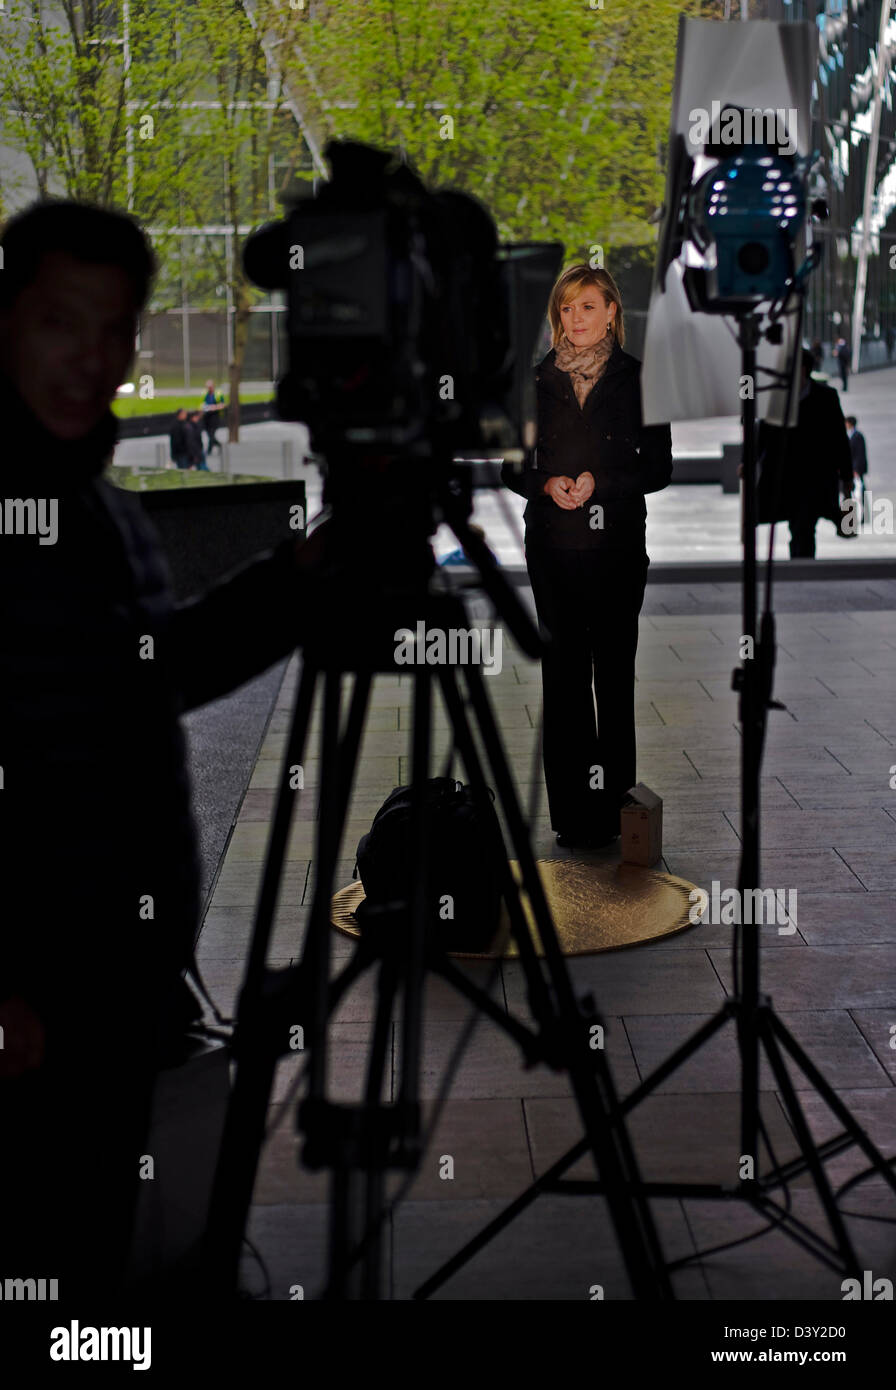 BBC Newsnight reporter on location London - Stock Image